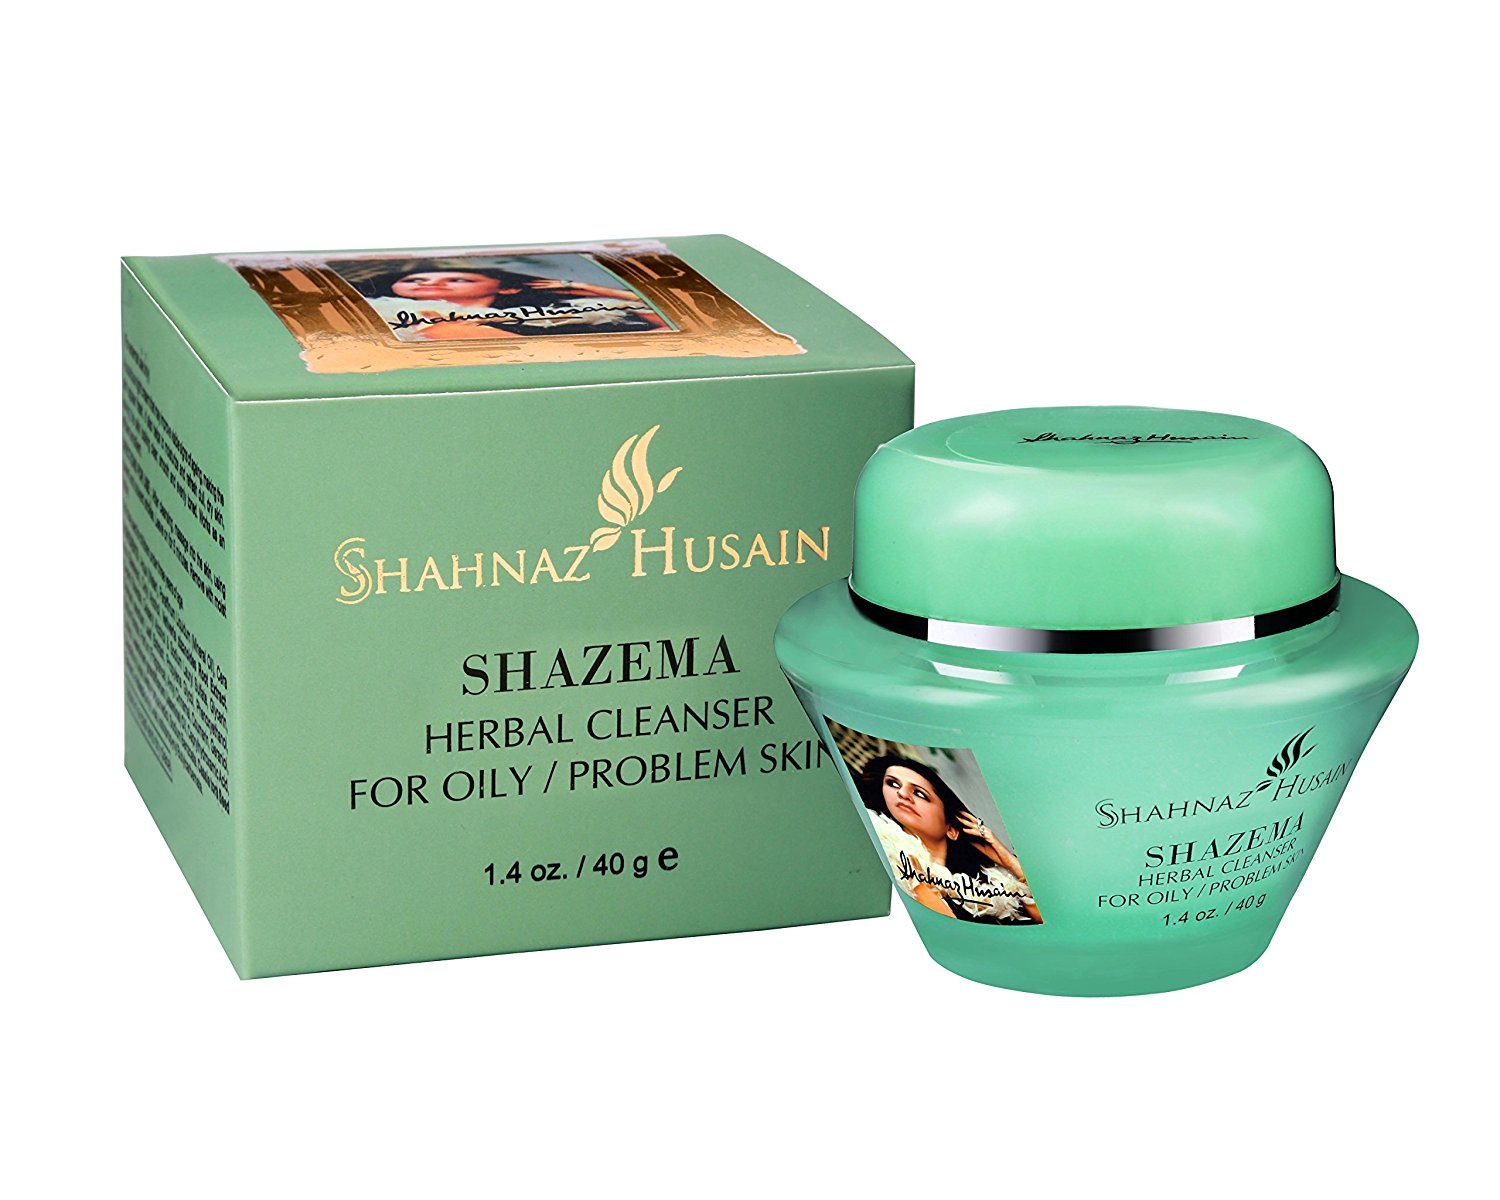 Buy Shahnaz Husain Shazema Herbal Cleanser for Oily / Problem Skin Online MY